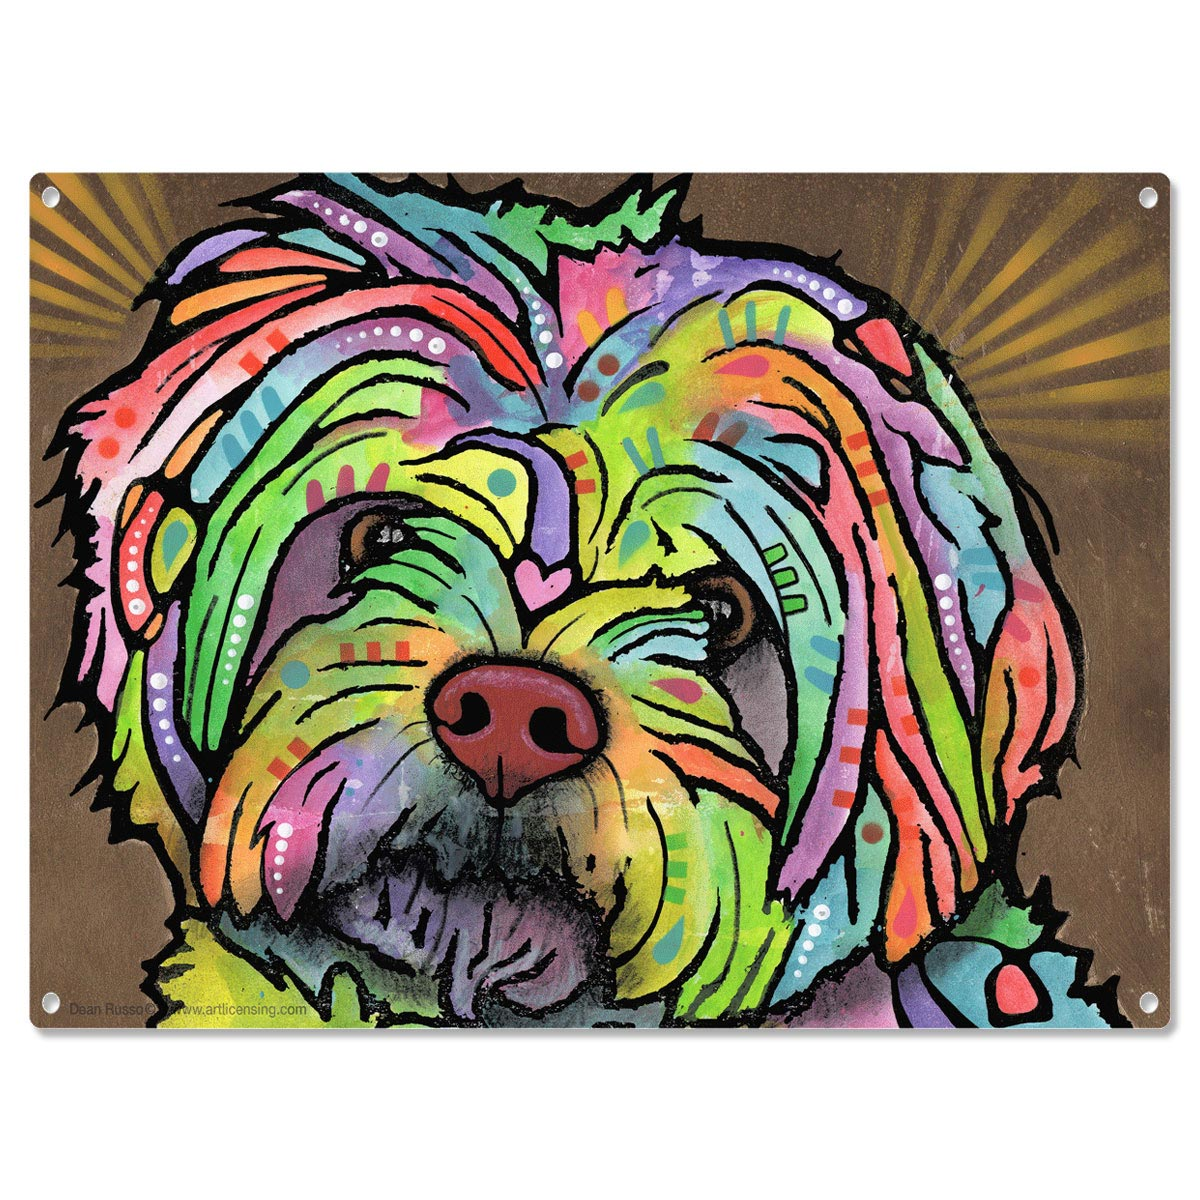 maltese dog dean russo metal sign amy pop art pet decor 16 x 12 - Dean Russo